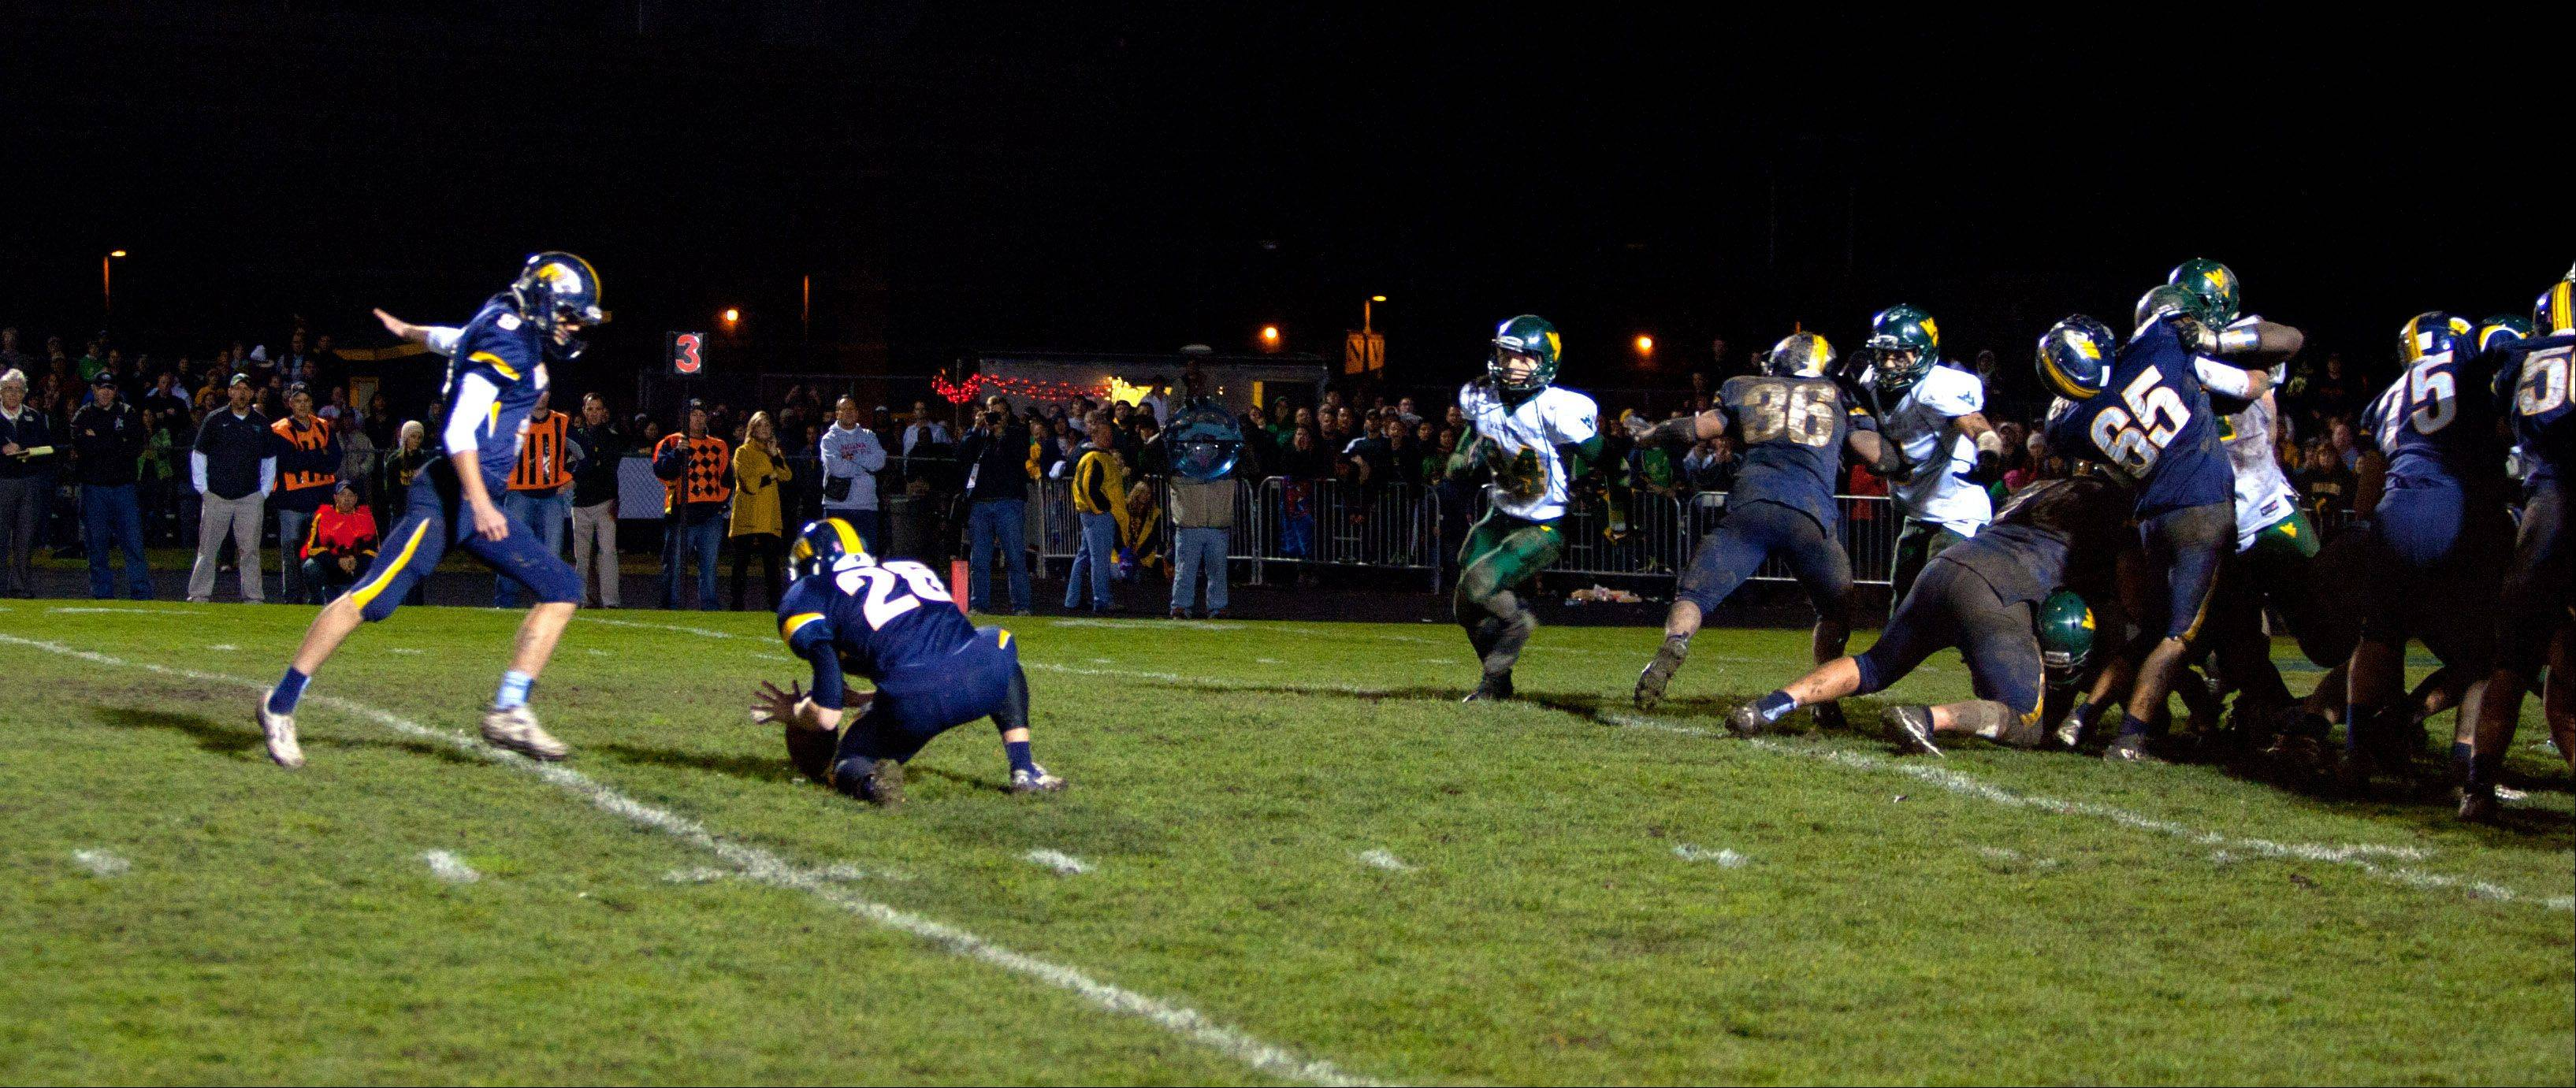 With seconds remaining, and under the hold of Conner Milliren (26), kicker Ryan Mulhern kicks the game winning field goal, for a 23-20 win over Waubonsie Valley.